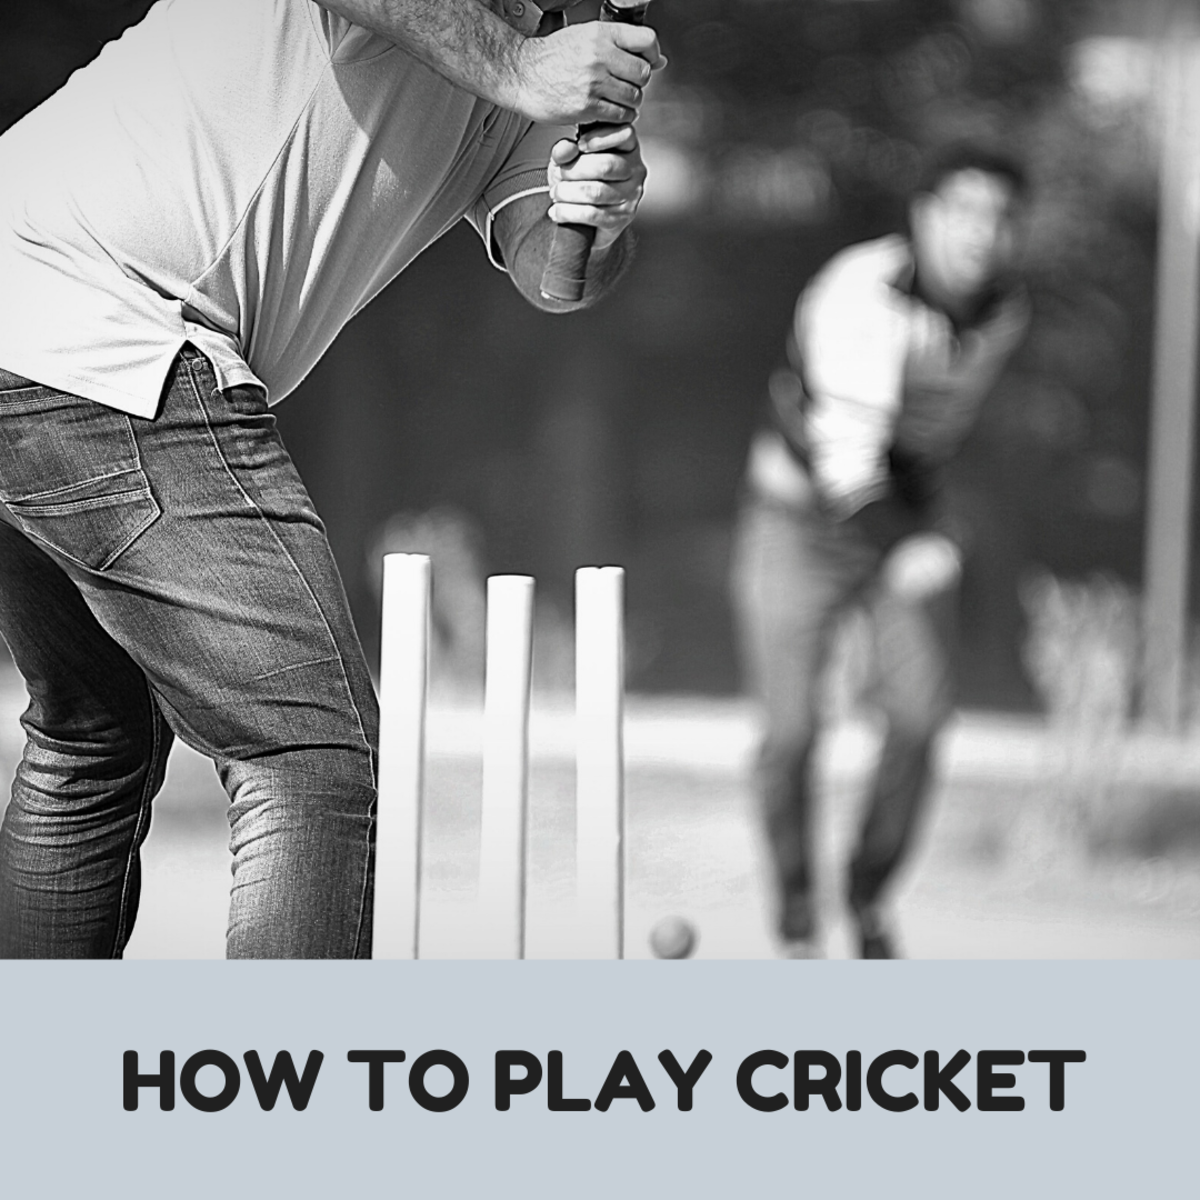 Read on to learn how to play cricket!